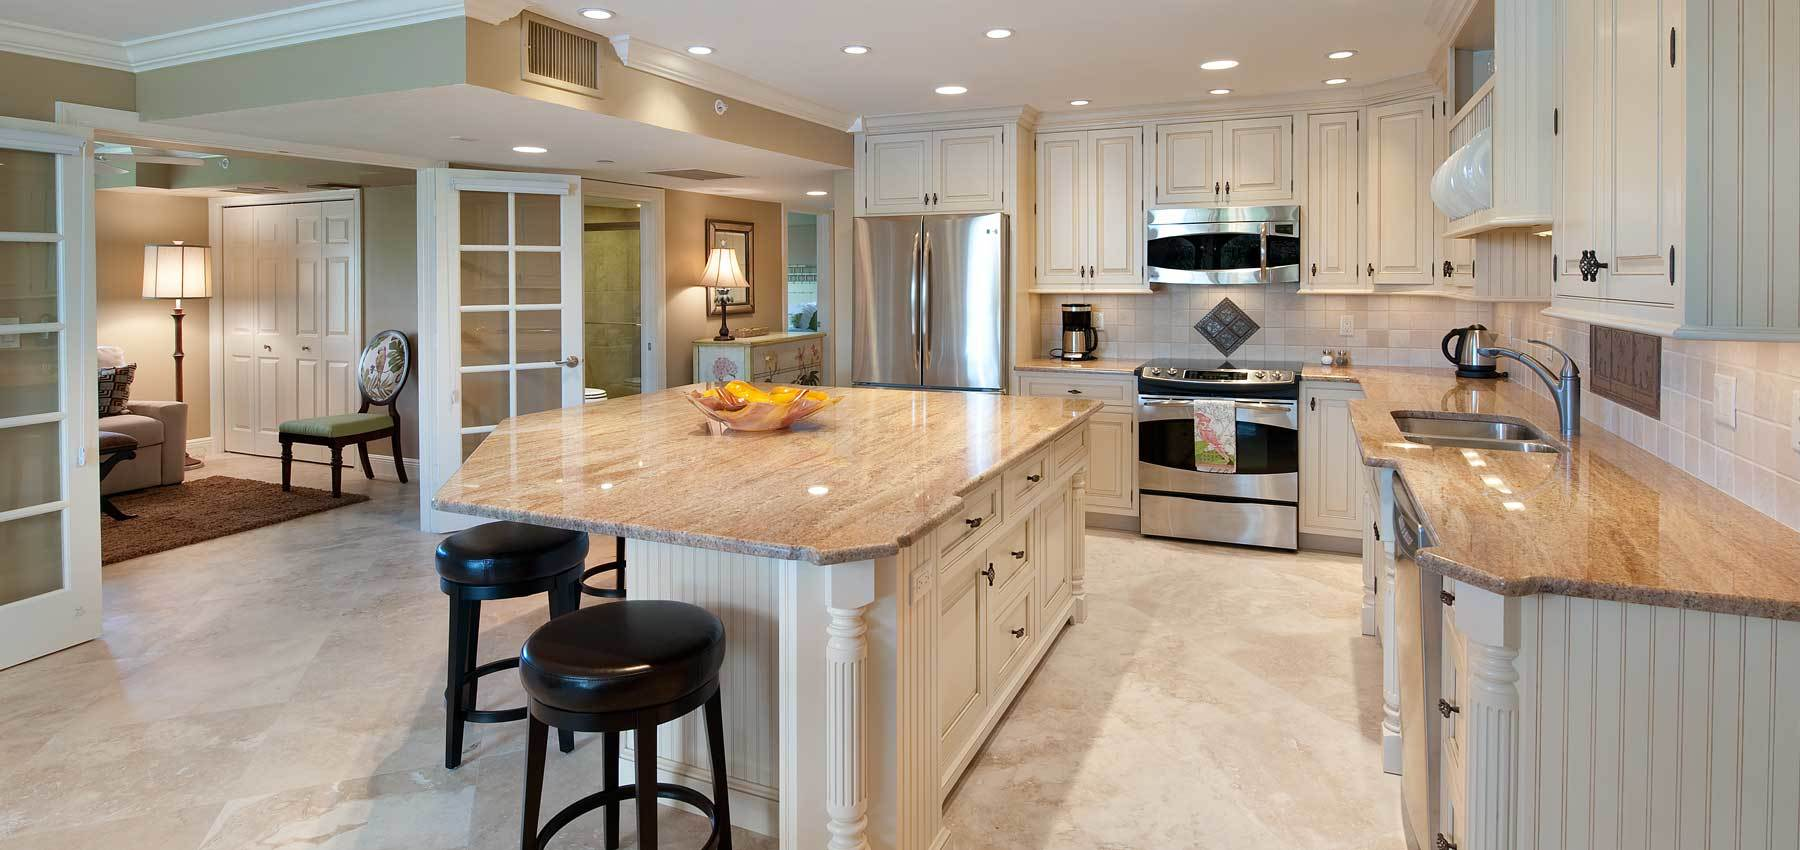 Kgt remodeling home remodeling naples florida for I kitchens and renovations